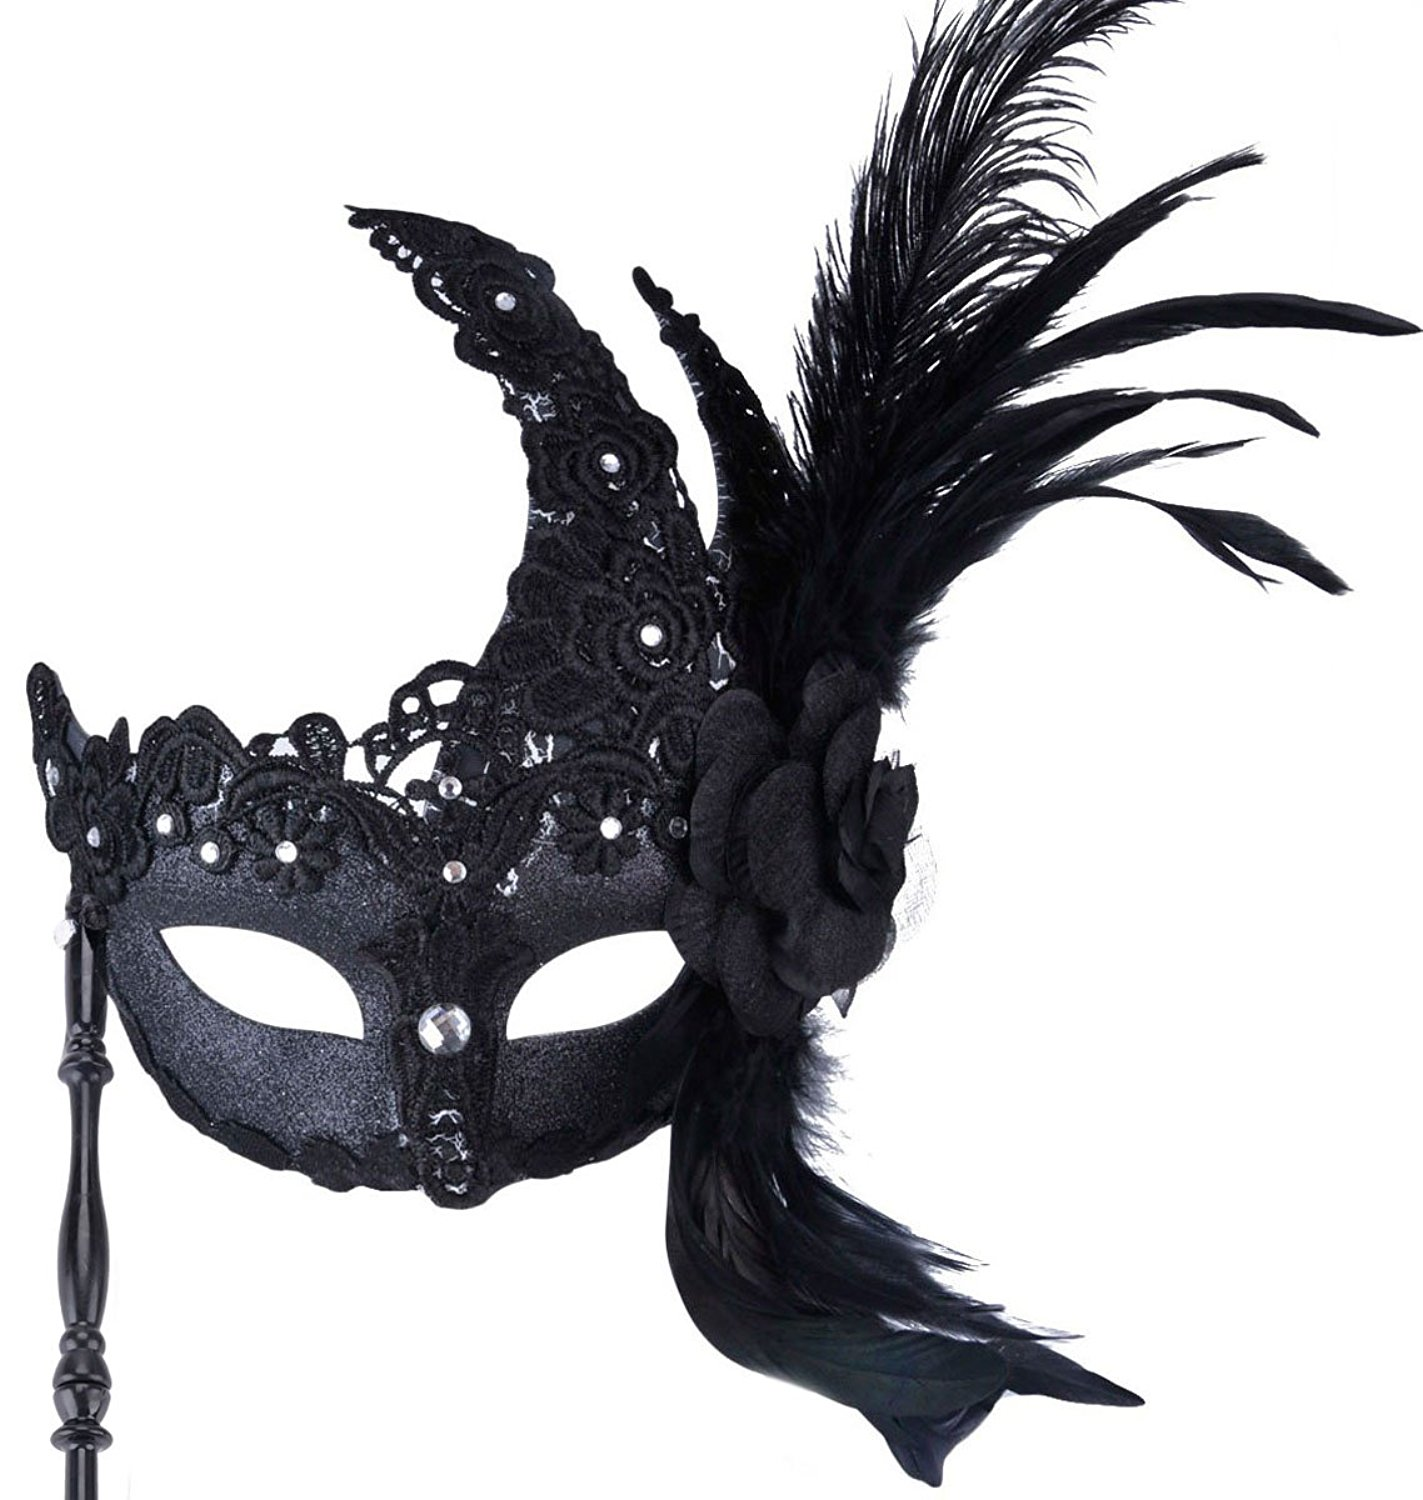 Amazon.com: Coxeer Masquerade Mask on Stick Black Halloween Costume ...